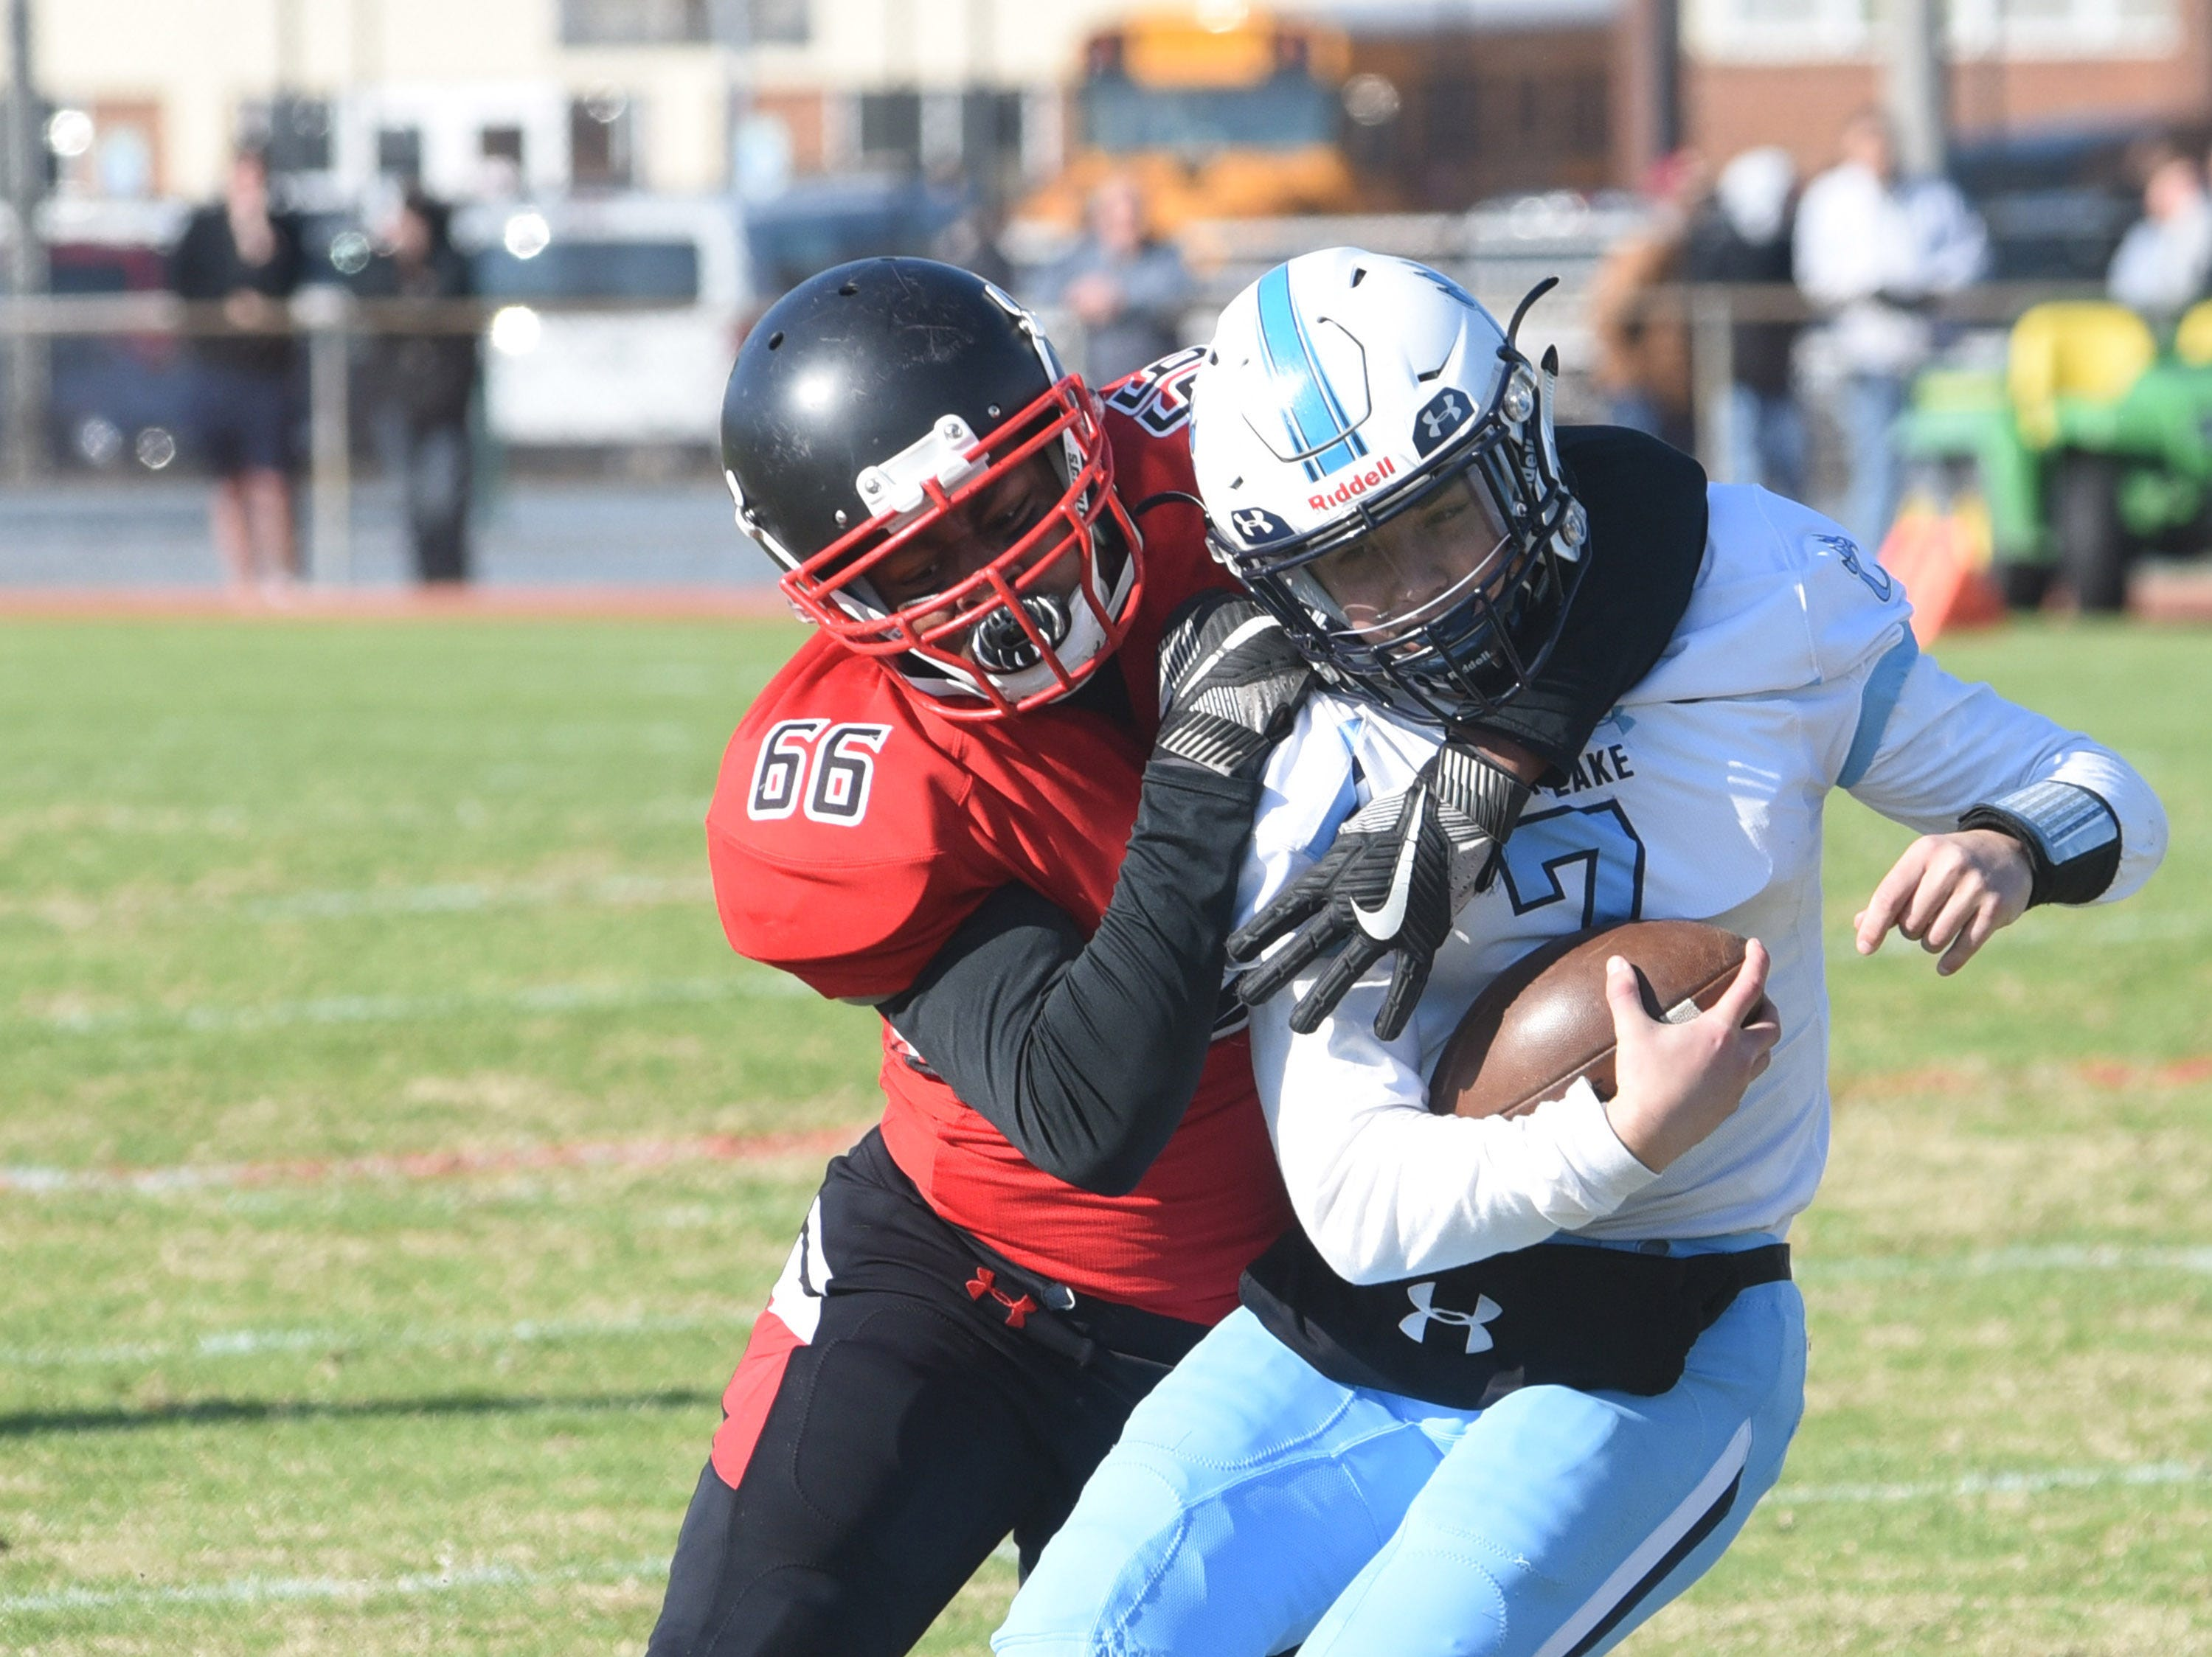 Bennett's Brian Duperval sacks Chesapeake's quarterback Dylan Young in the first half during James M. Bennett'st to Chesapeake 36-21 in the State Regional playoff game at County Stadium on Saturday.